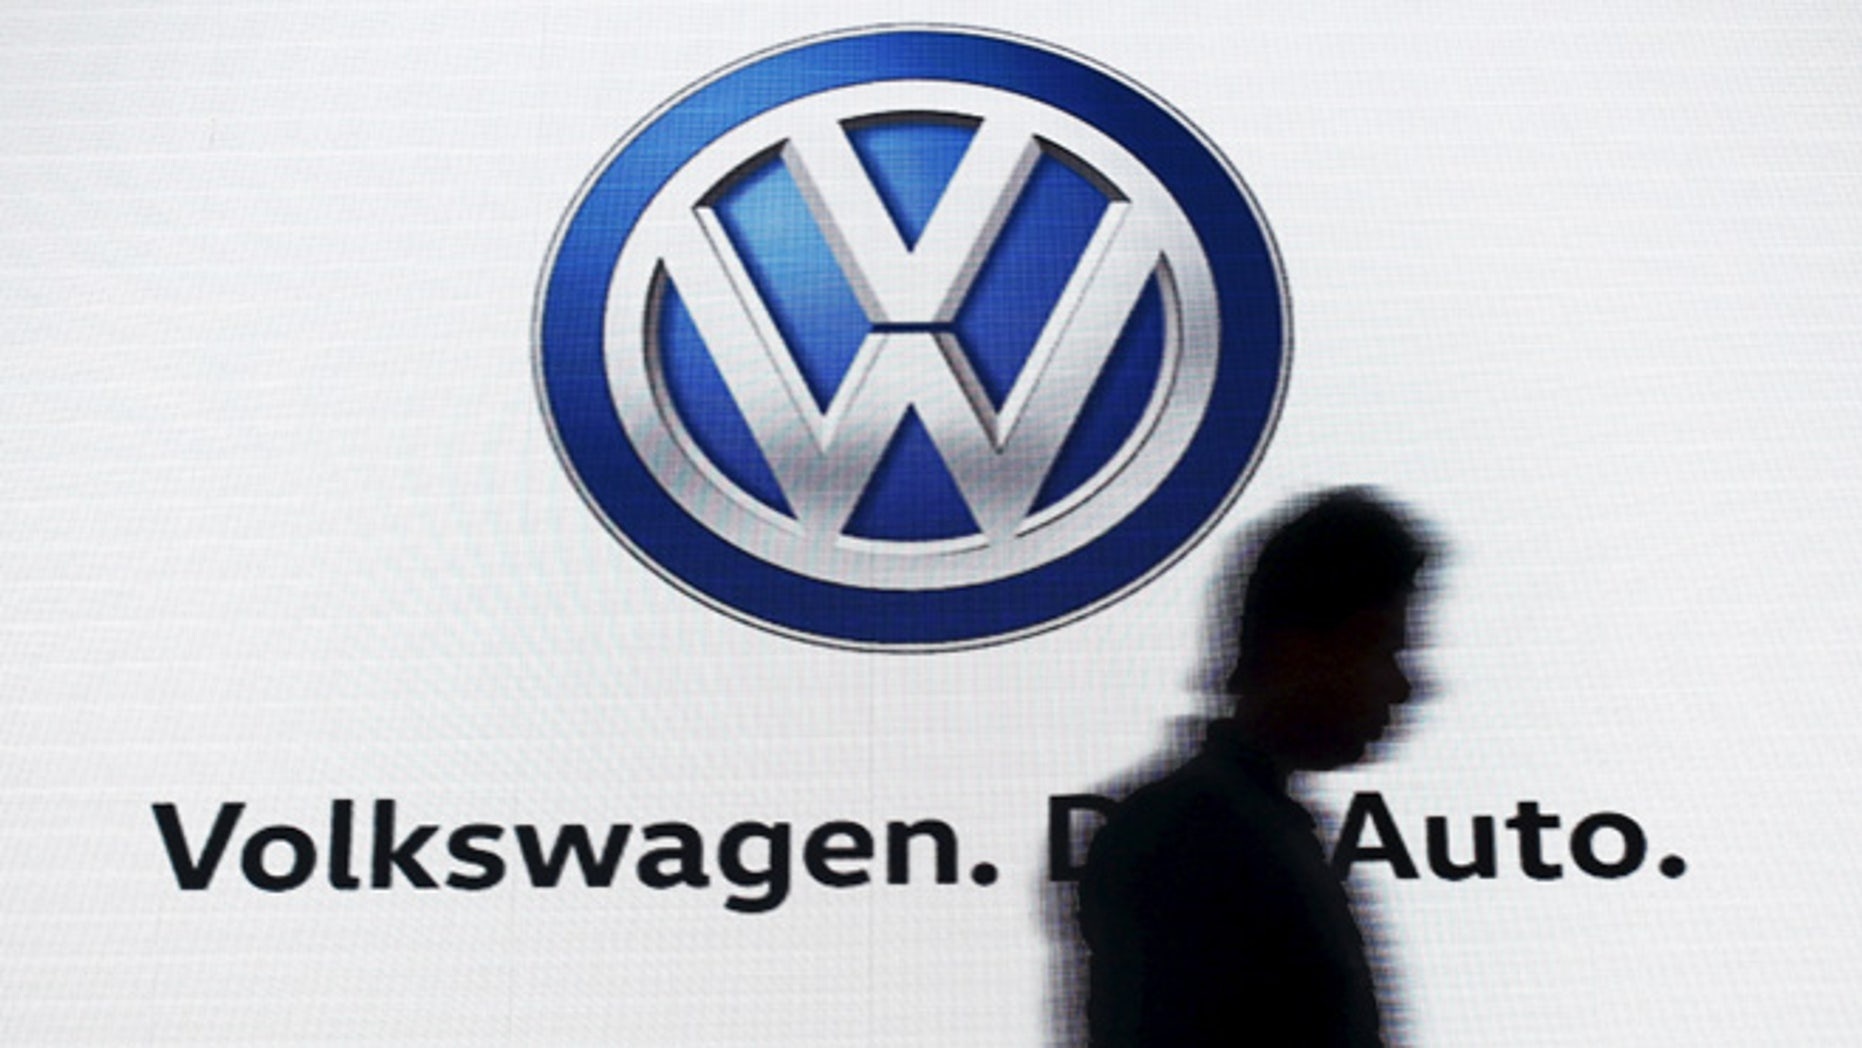 June 23, 2015: A man walks past a screen displaying a logo of Volkswagen at an event in New Delhi, India. (Reuters)